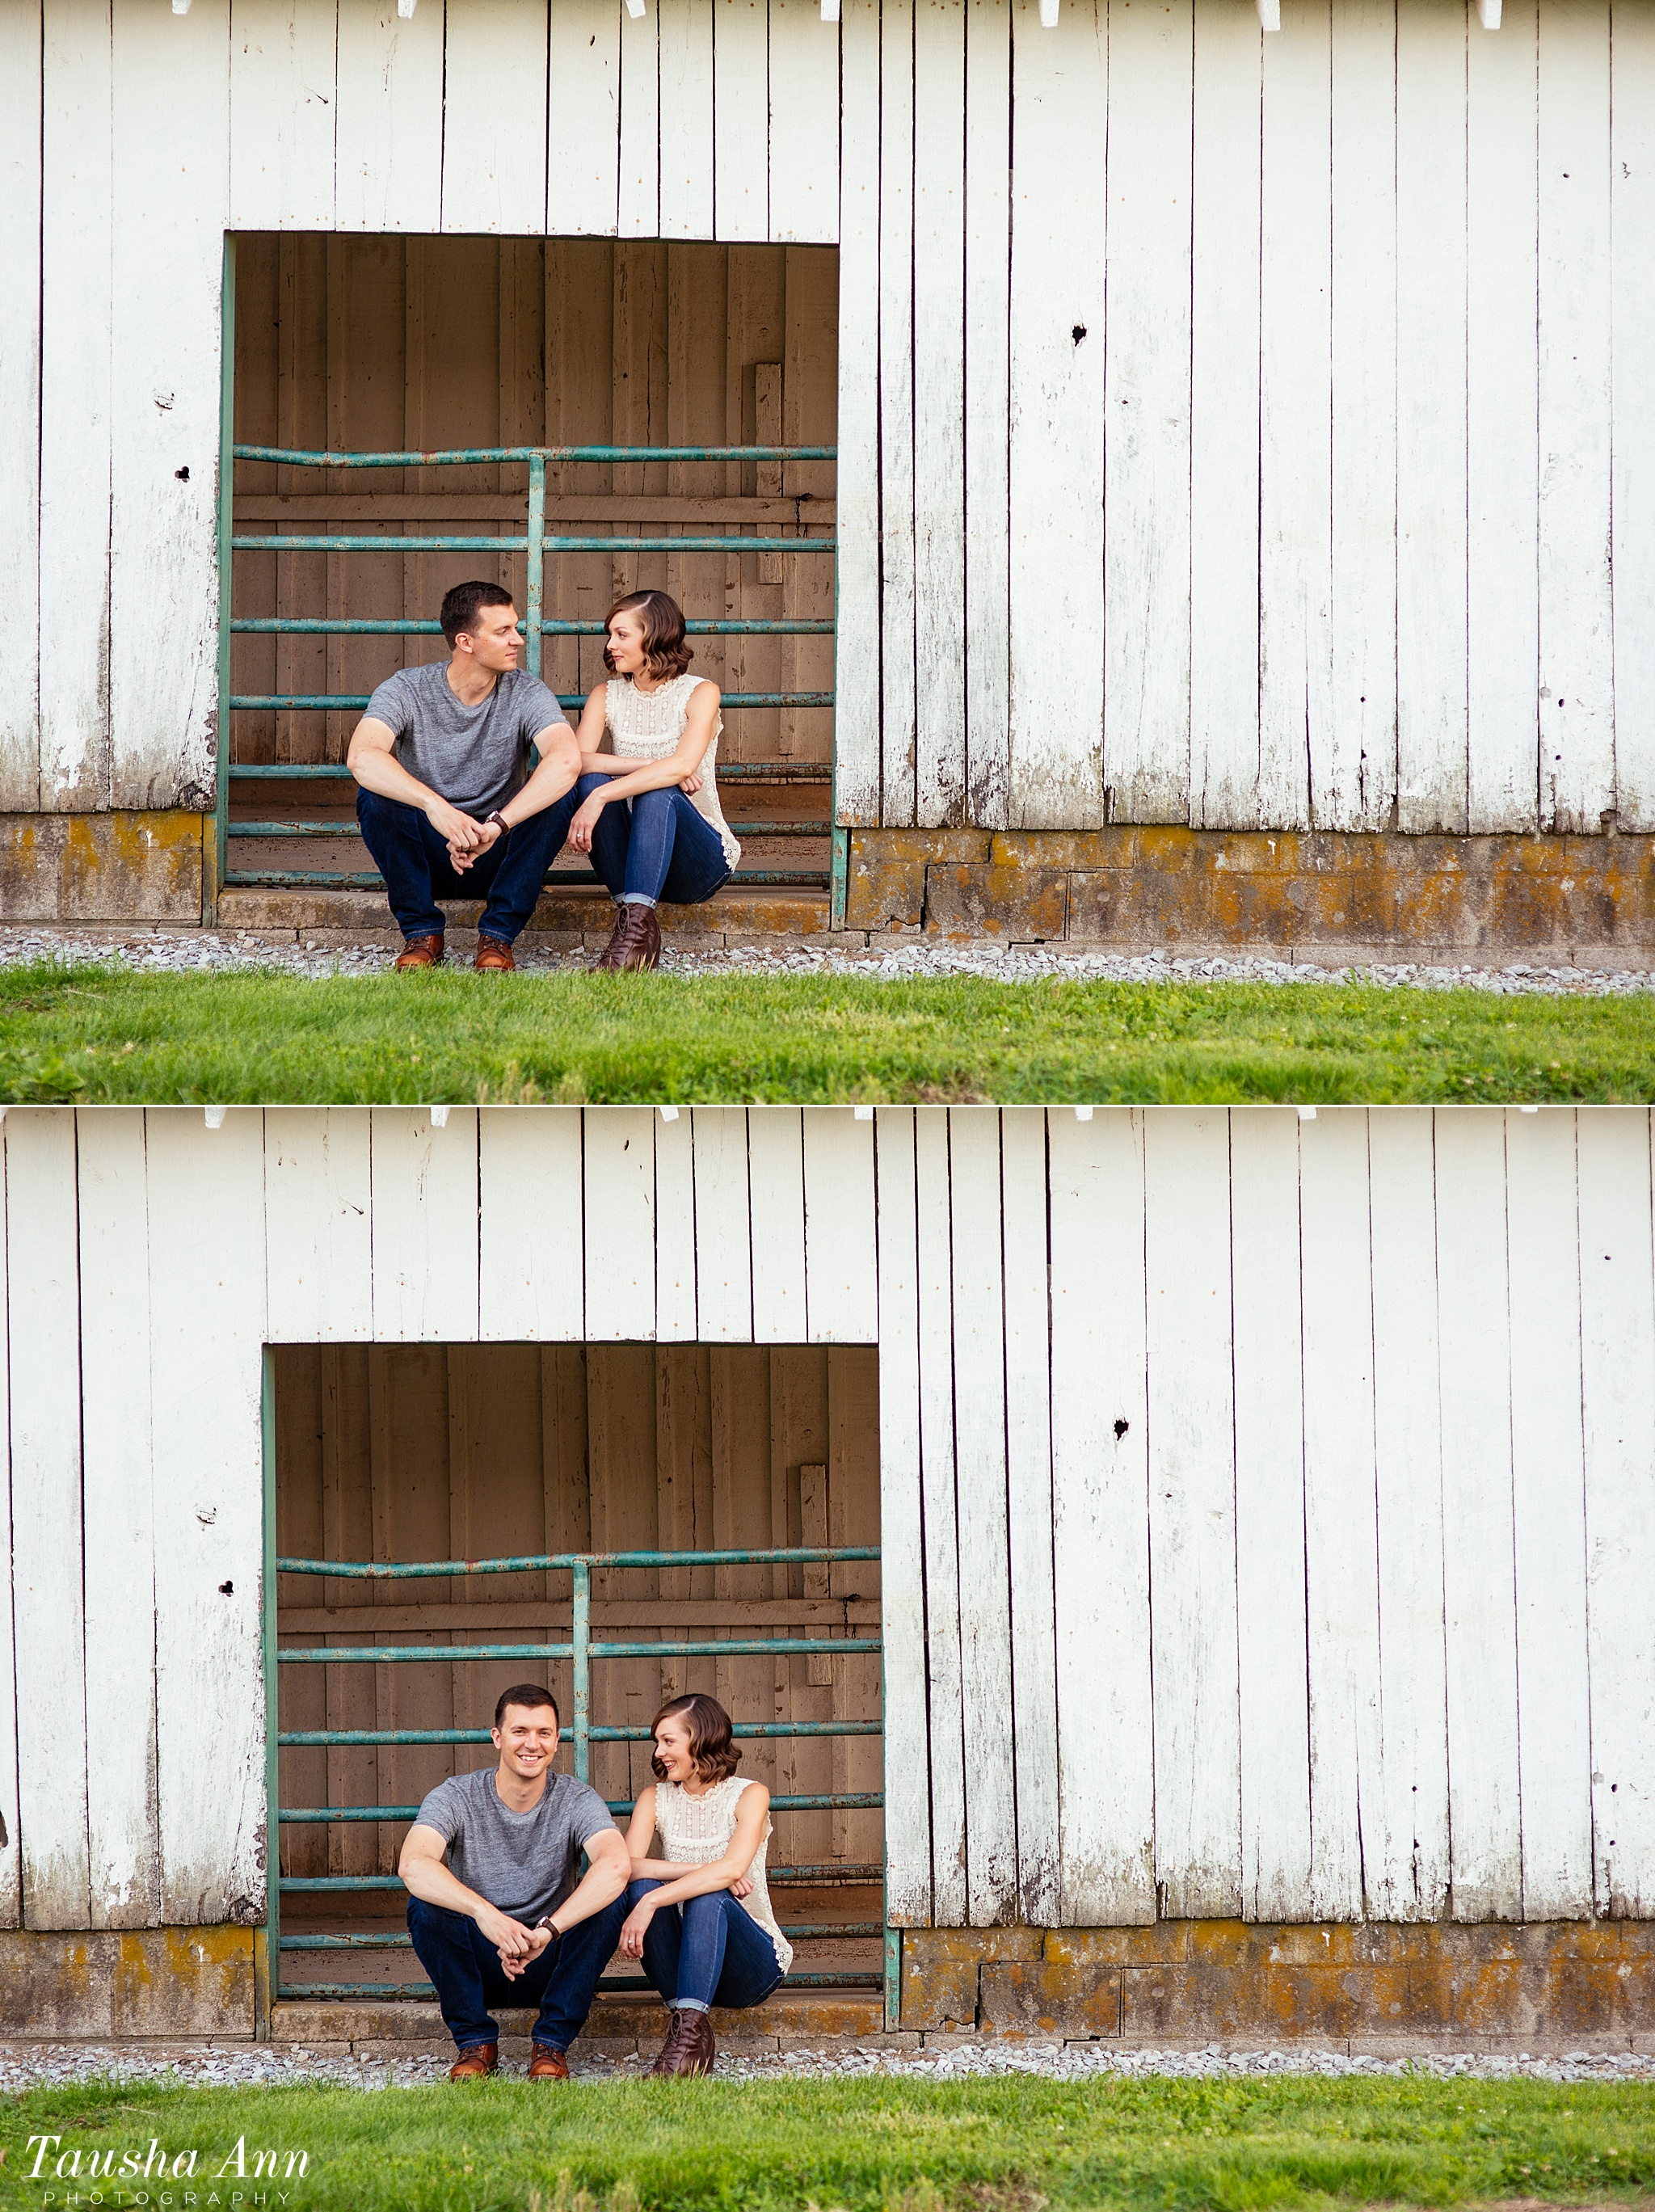 Nashville_engagement_Wedding_Tausha_Ann_Photography_Franklin_TN_Harlinsdale_Farm_Agricultural_Center_Nashville_0111